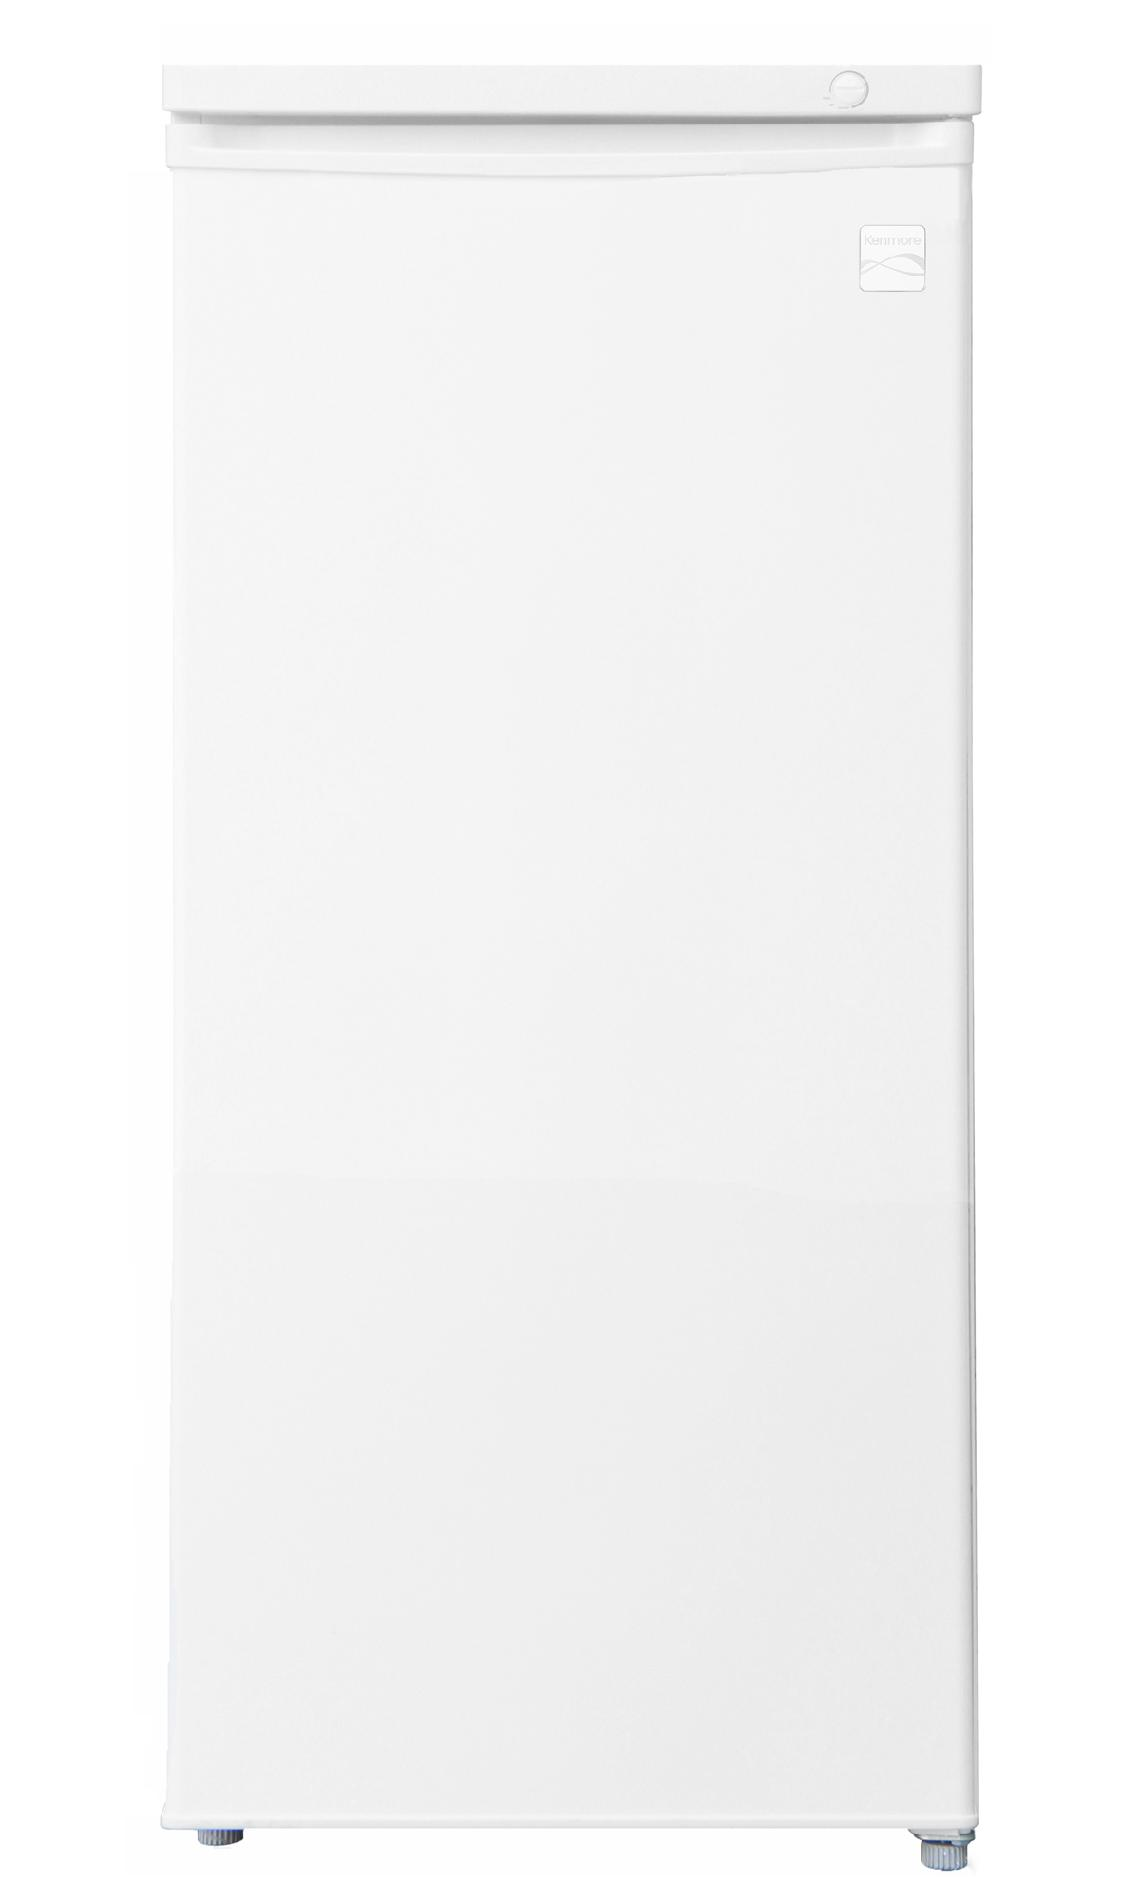 Kmart Freezer Kenmore 20502 4 9 Cu Ft Upright Freezer White